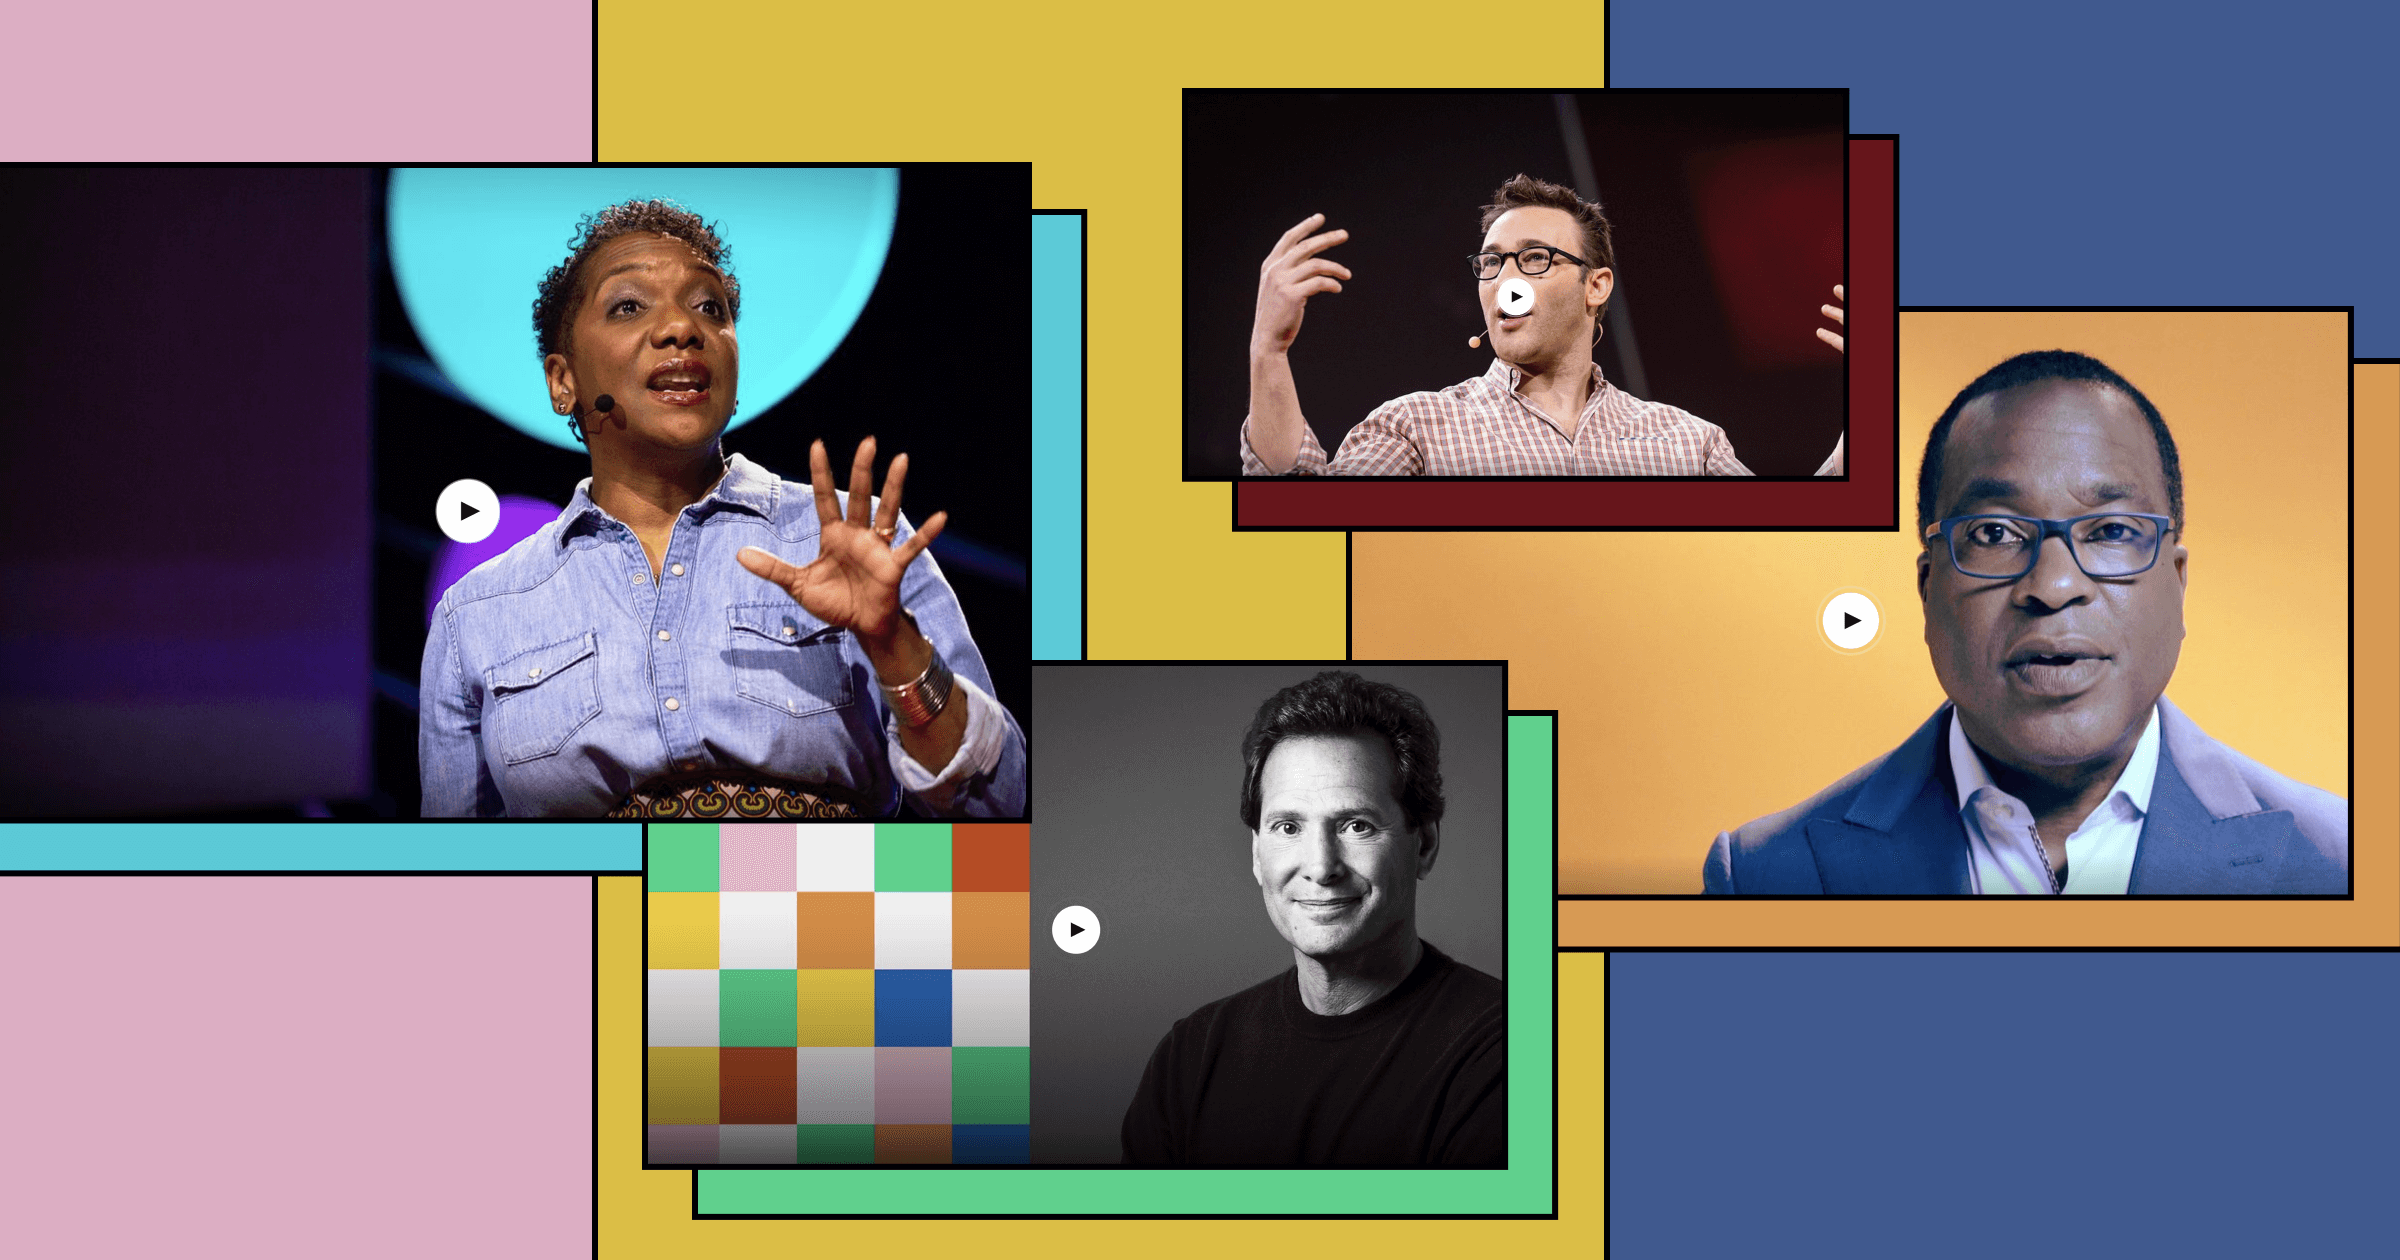 Four stills from TED Talks featuring the images of the speakers: Janet Stovall, Michael C. Bush, Dan Schulman, and Simon Sinek